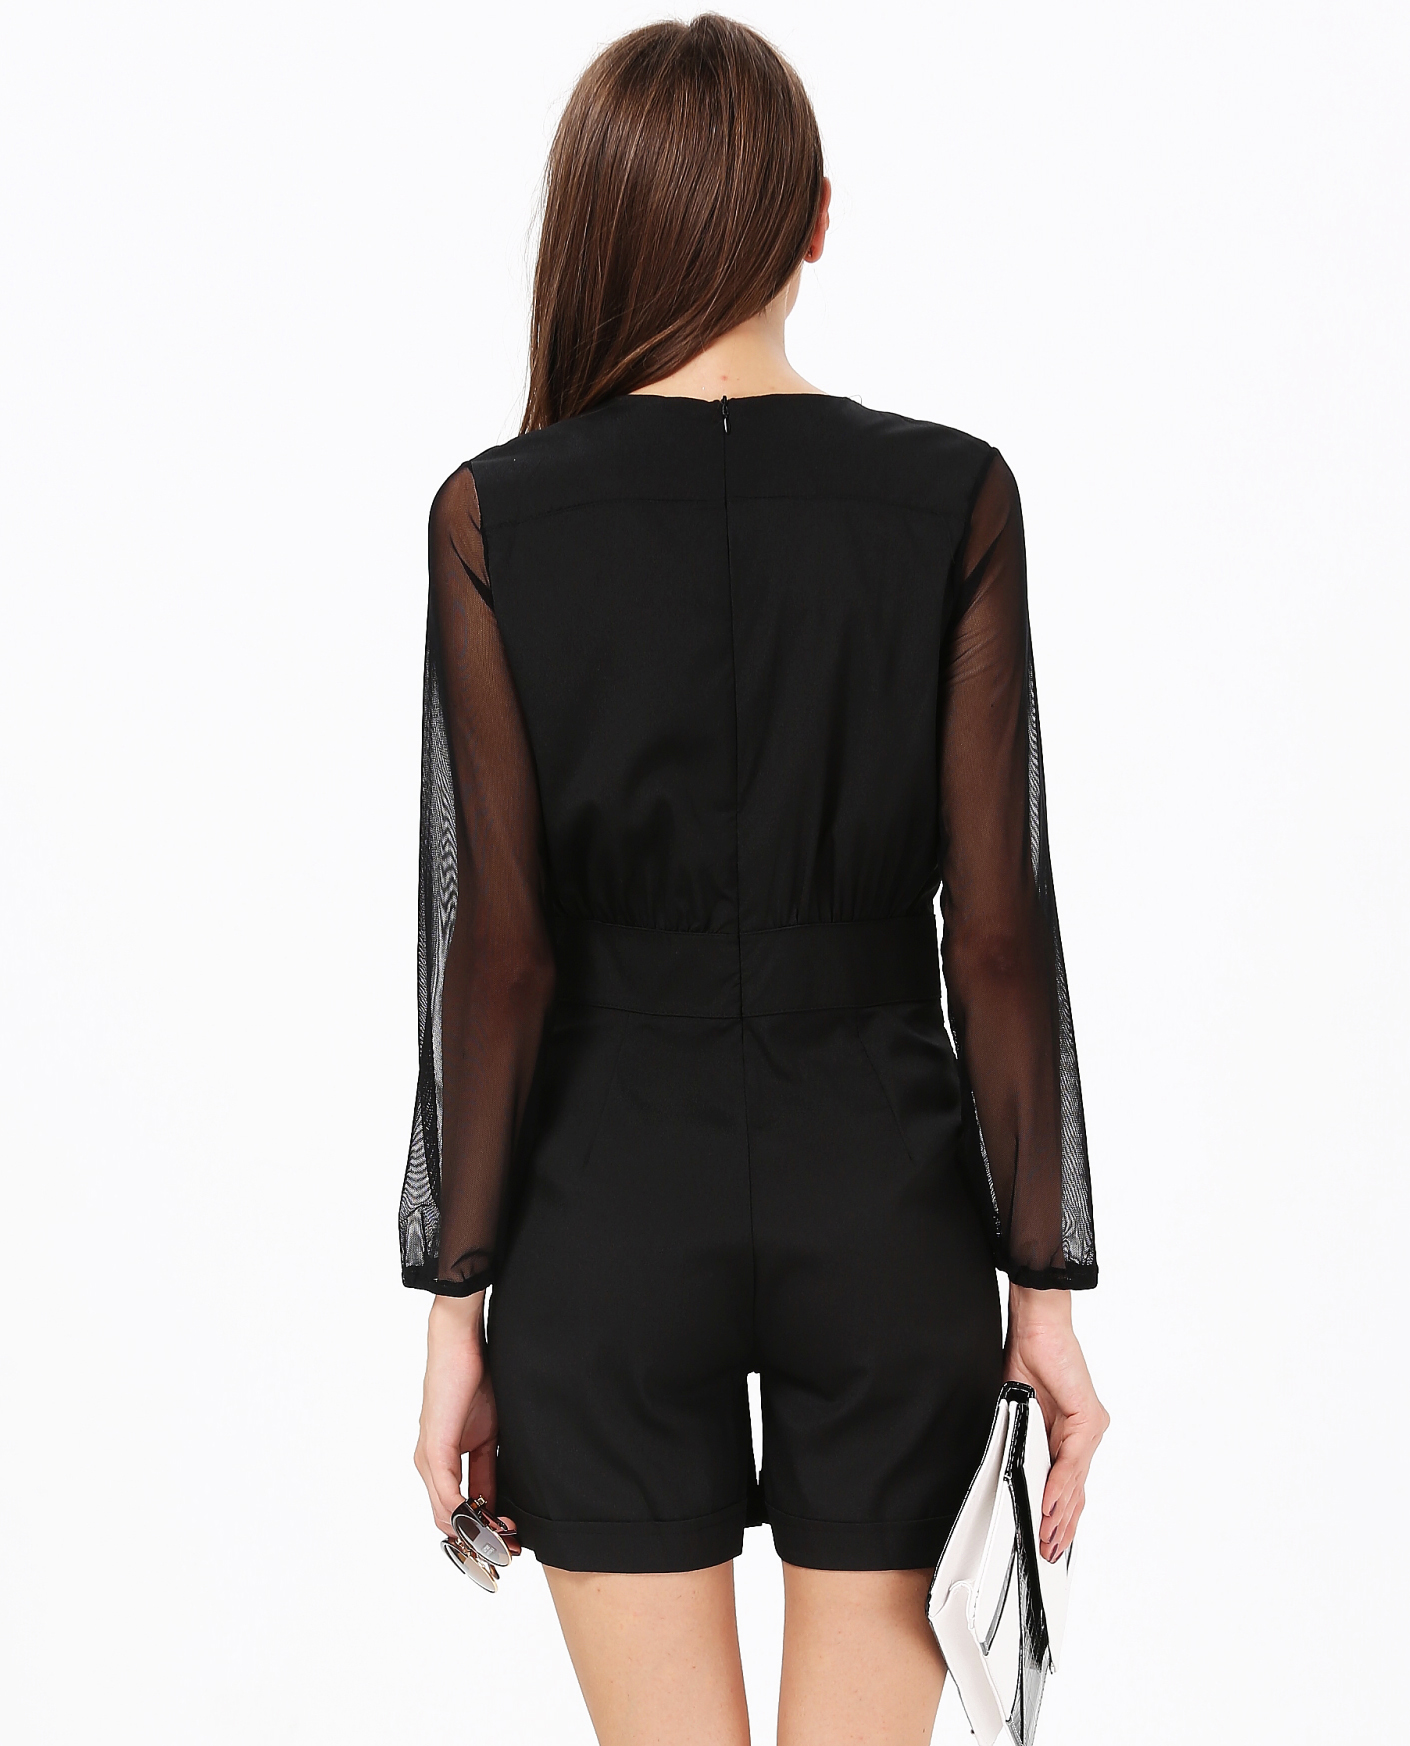 Black Deep V-neck Long Sleeve Playsuit - Sheinside.com